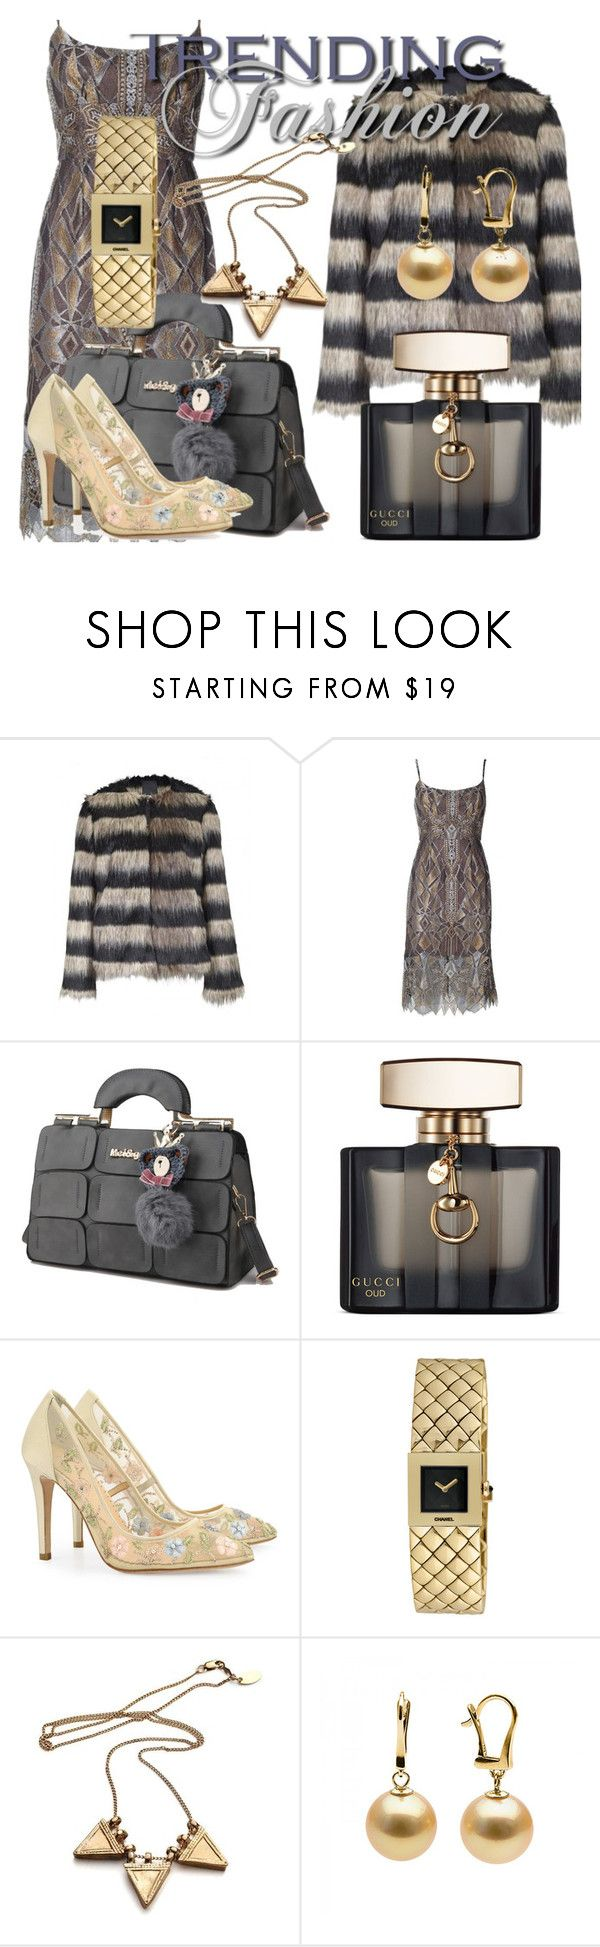 """""""Fashion Trending"""" by drahuschka on Polyvore featuring Ichi, BCBGMAXAZRIA, Gucci and Chanel"""